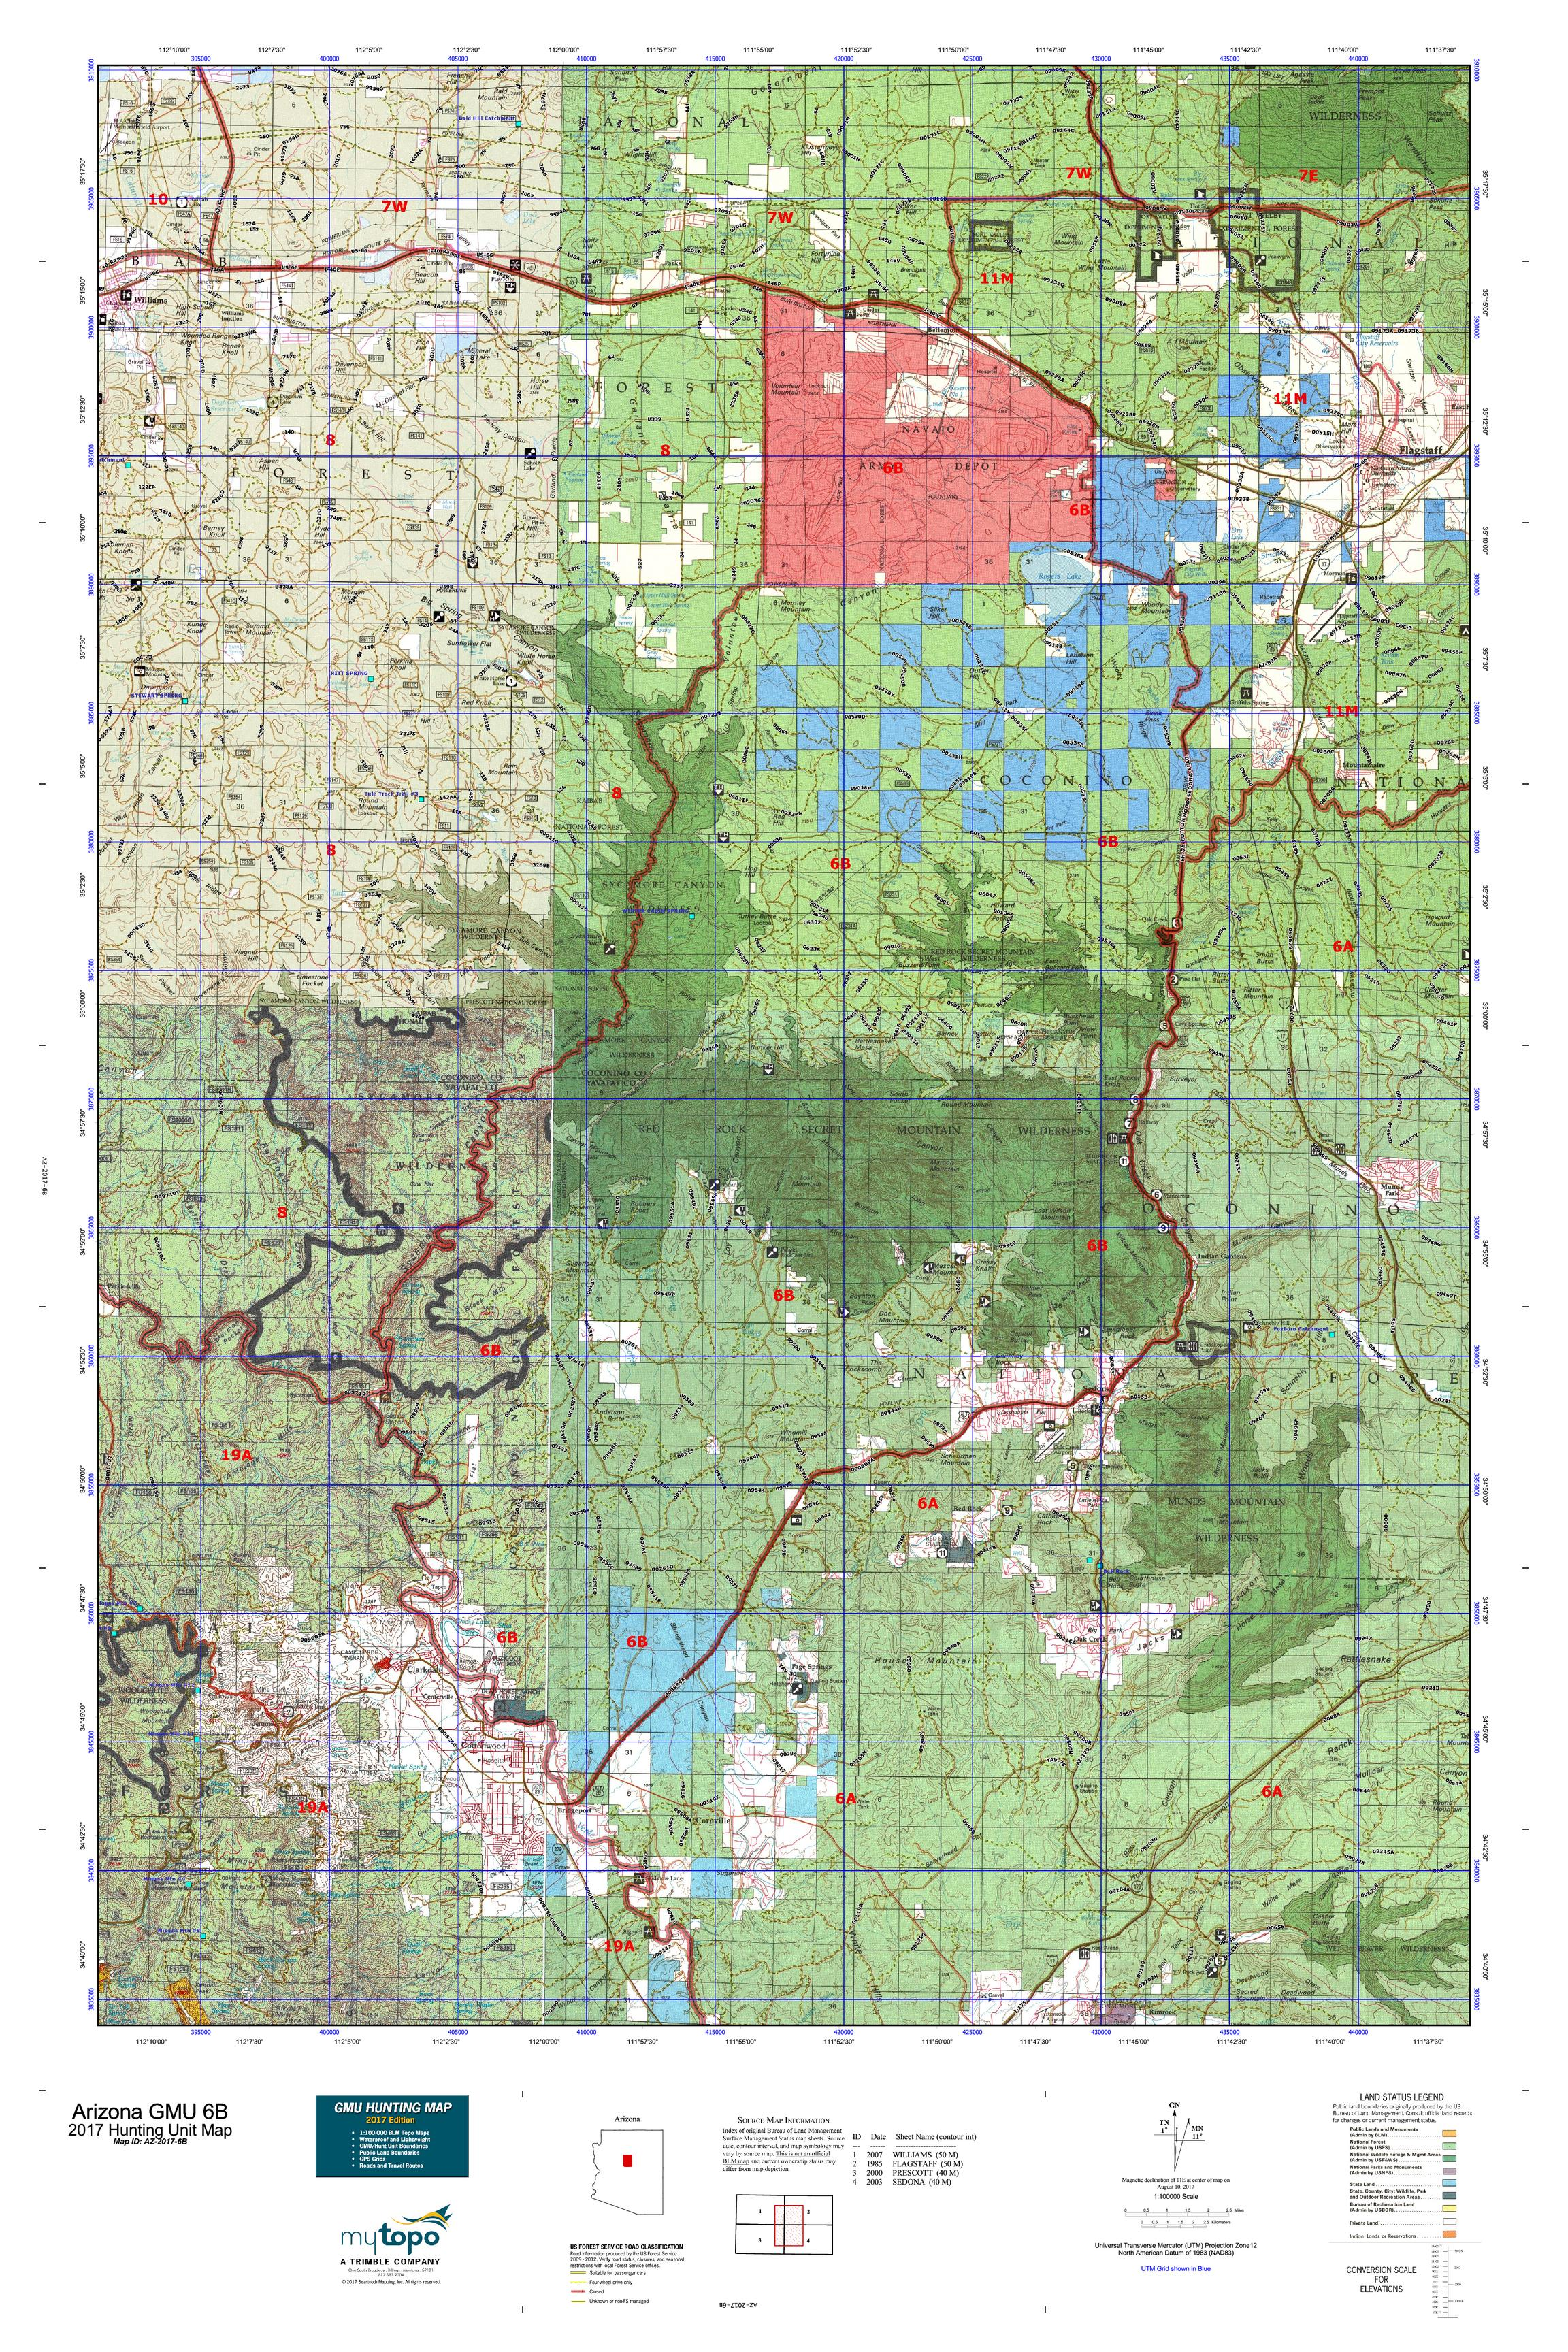 Arizona gmu 6b map mytopo for Arizona game and fish locations